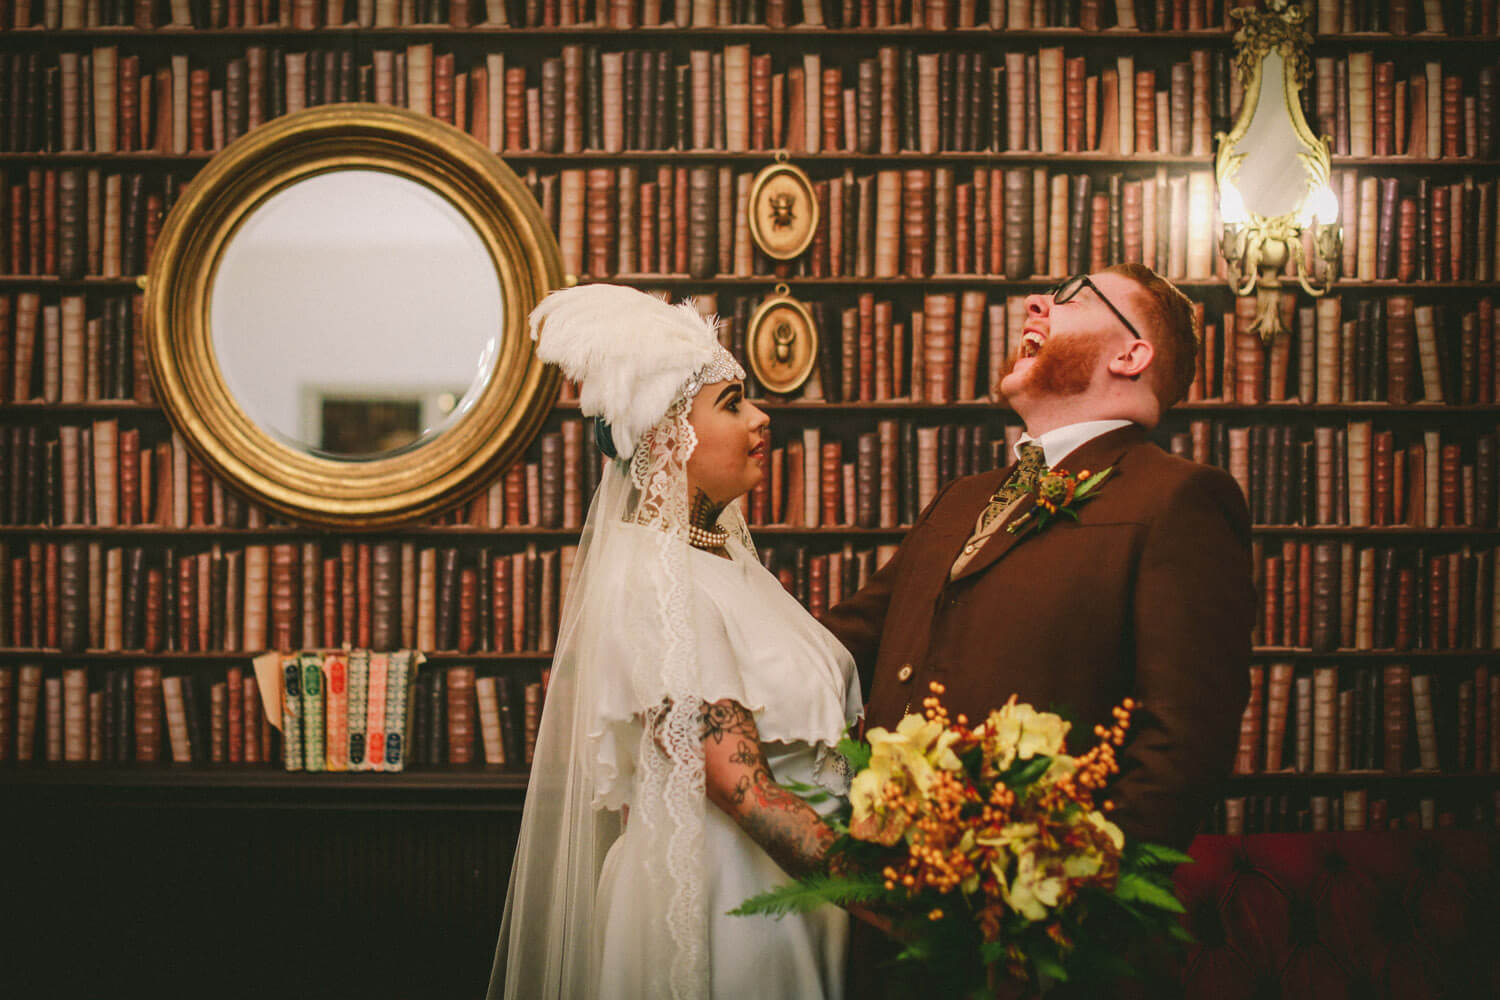 Vintage wedding groom laughing in front of books with bride in headwear